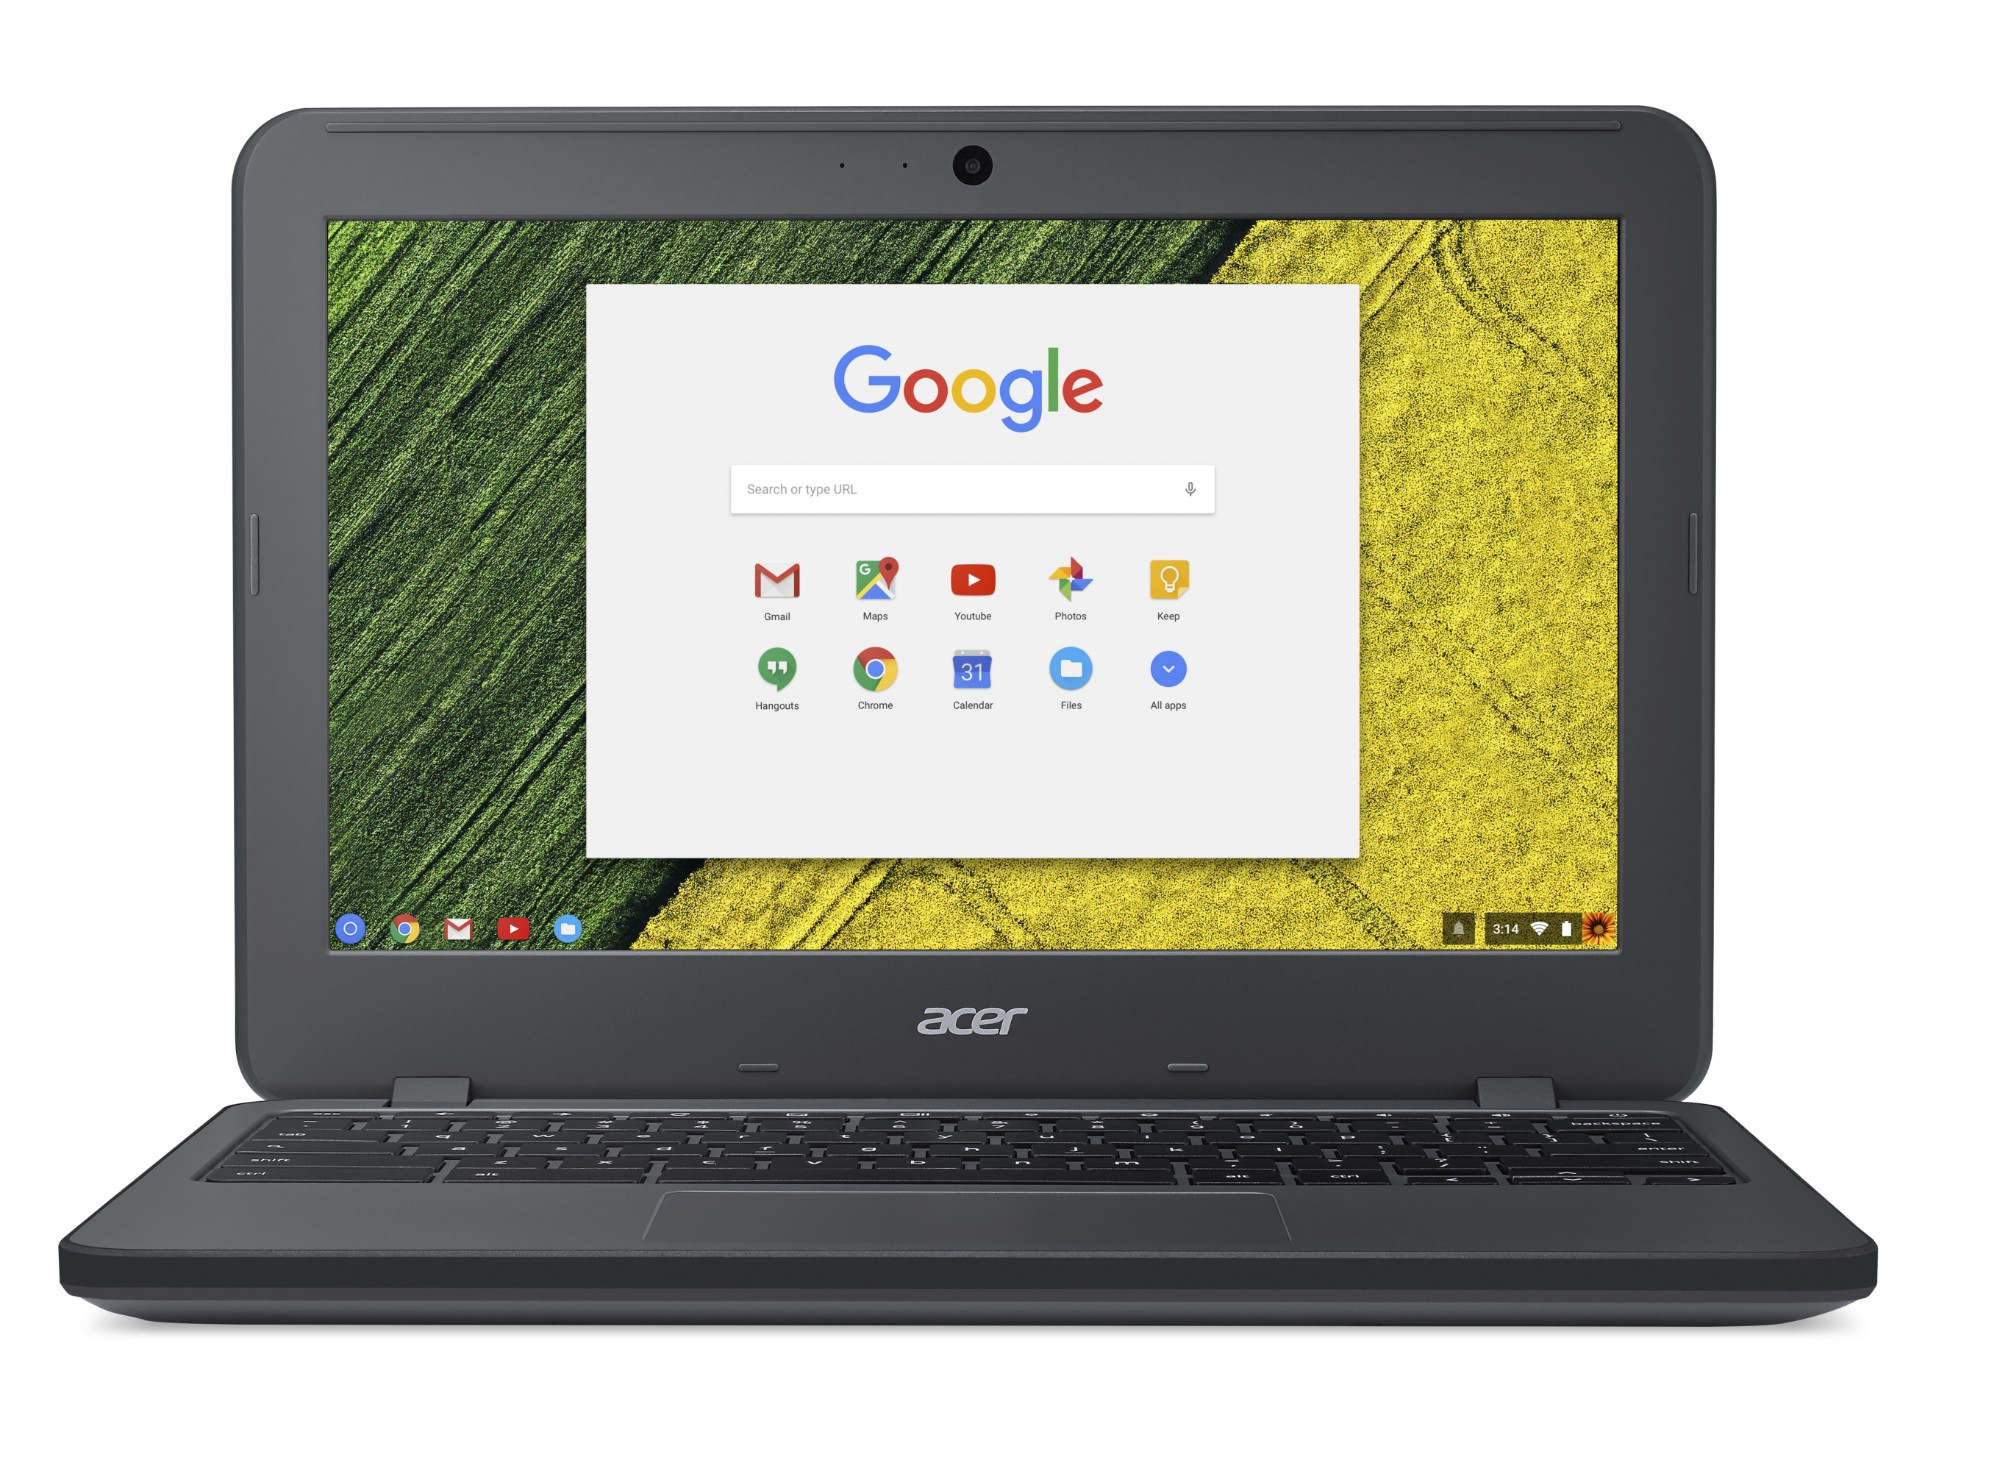 Chromebook C731t-c96j Celeron N3060 / 4GB 32GB SSD 11.6in Chrome Os